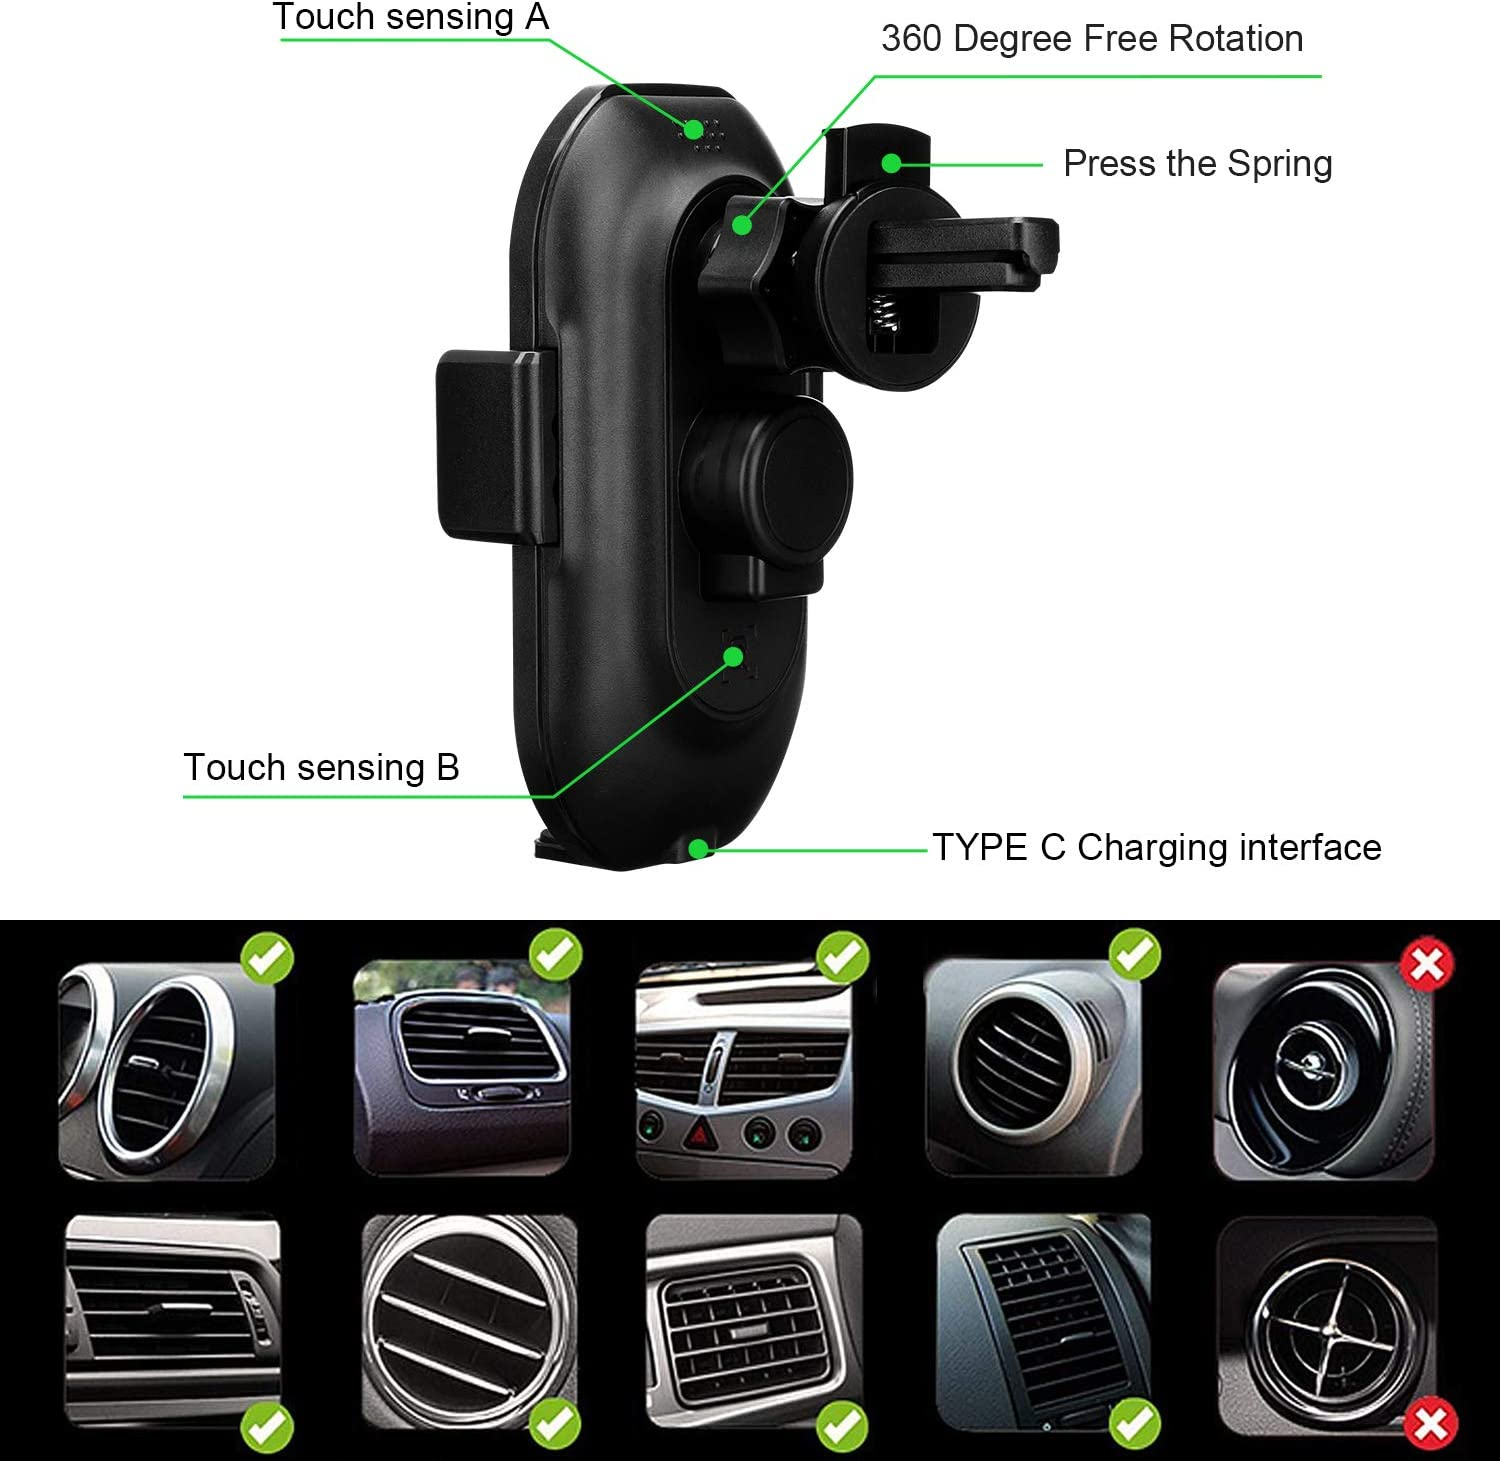 Anstop 2-in-1 Cup Holder Phone Mount Air Vent Holder Auto Clamping Qi Fast Charging Cell Phone Holder Compatible iPhone 11//Xs Max//XS//XR//X//8//8+ Samsung S10//S10+//S9//S9+(Black) Wireless Car Charger